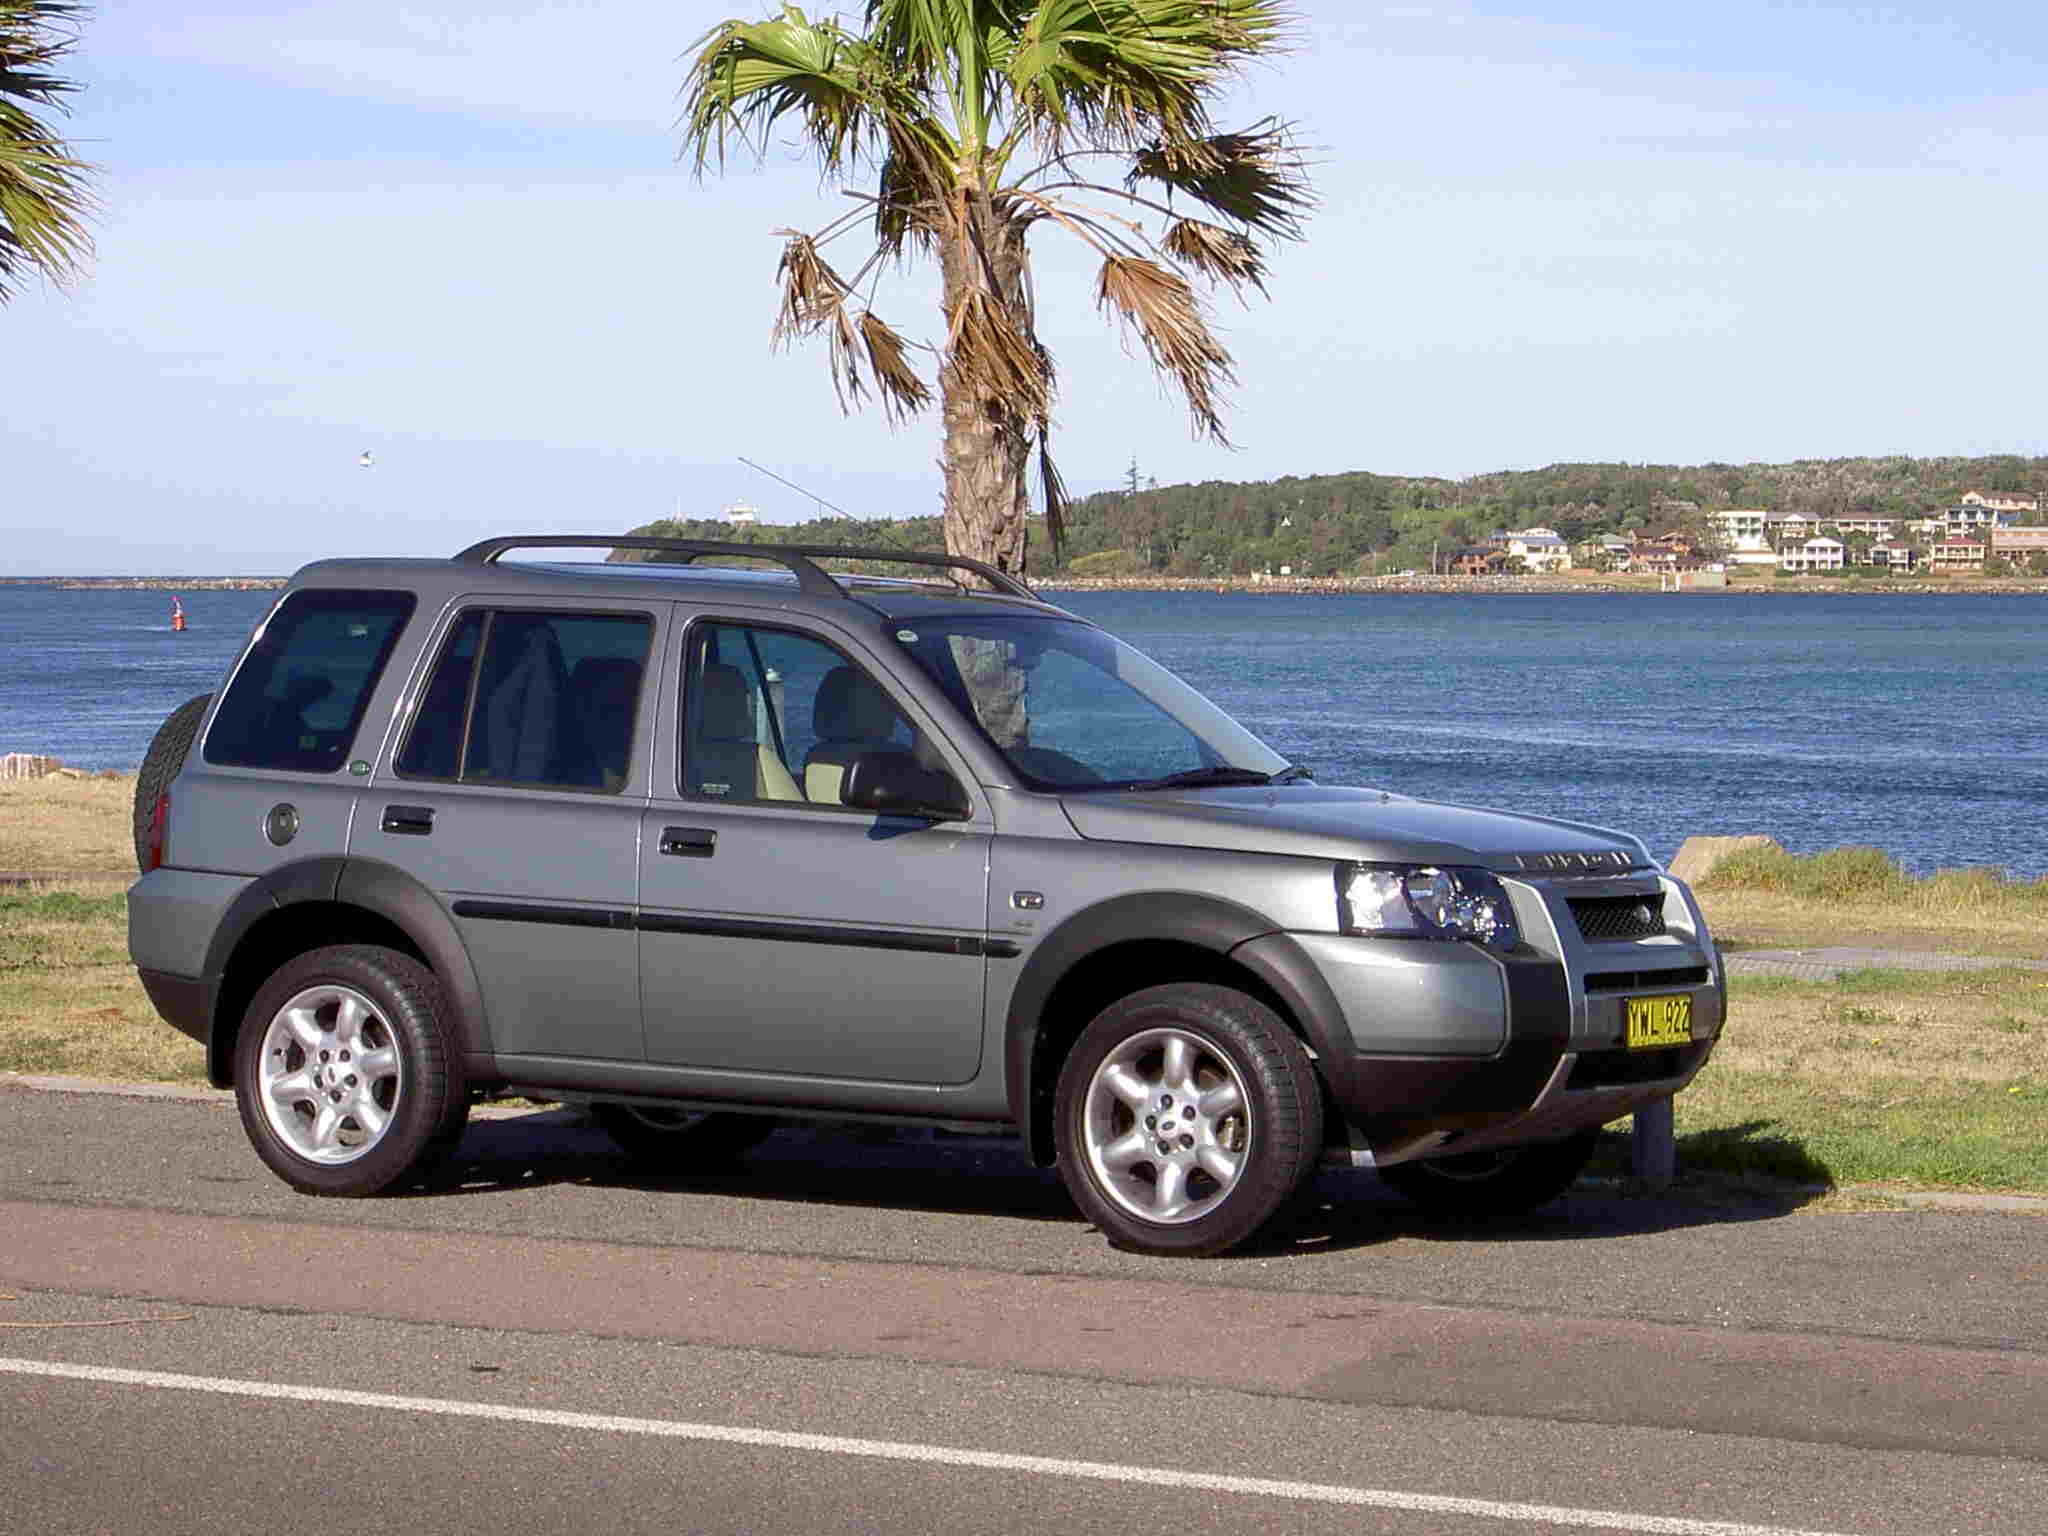 land rover freelander road test next car pty ltd 15th. Black Bedroom Furniture Sets. Home Design Ideas